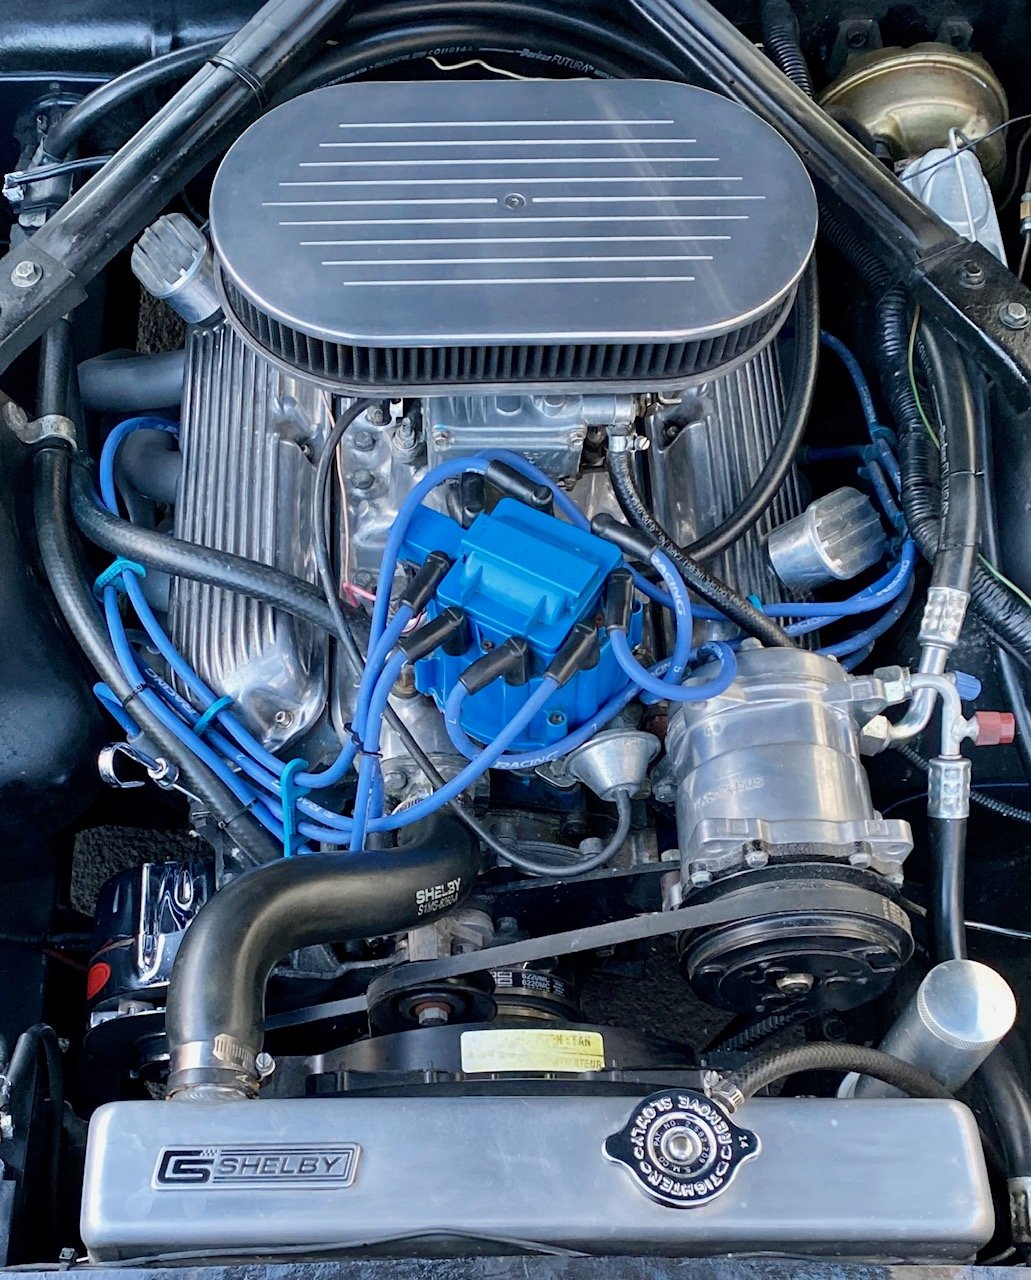 1966 Ford Mustang 302 GT Coupe - 300 BHP For Sale (picture 5 of 6)